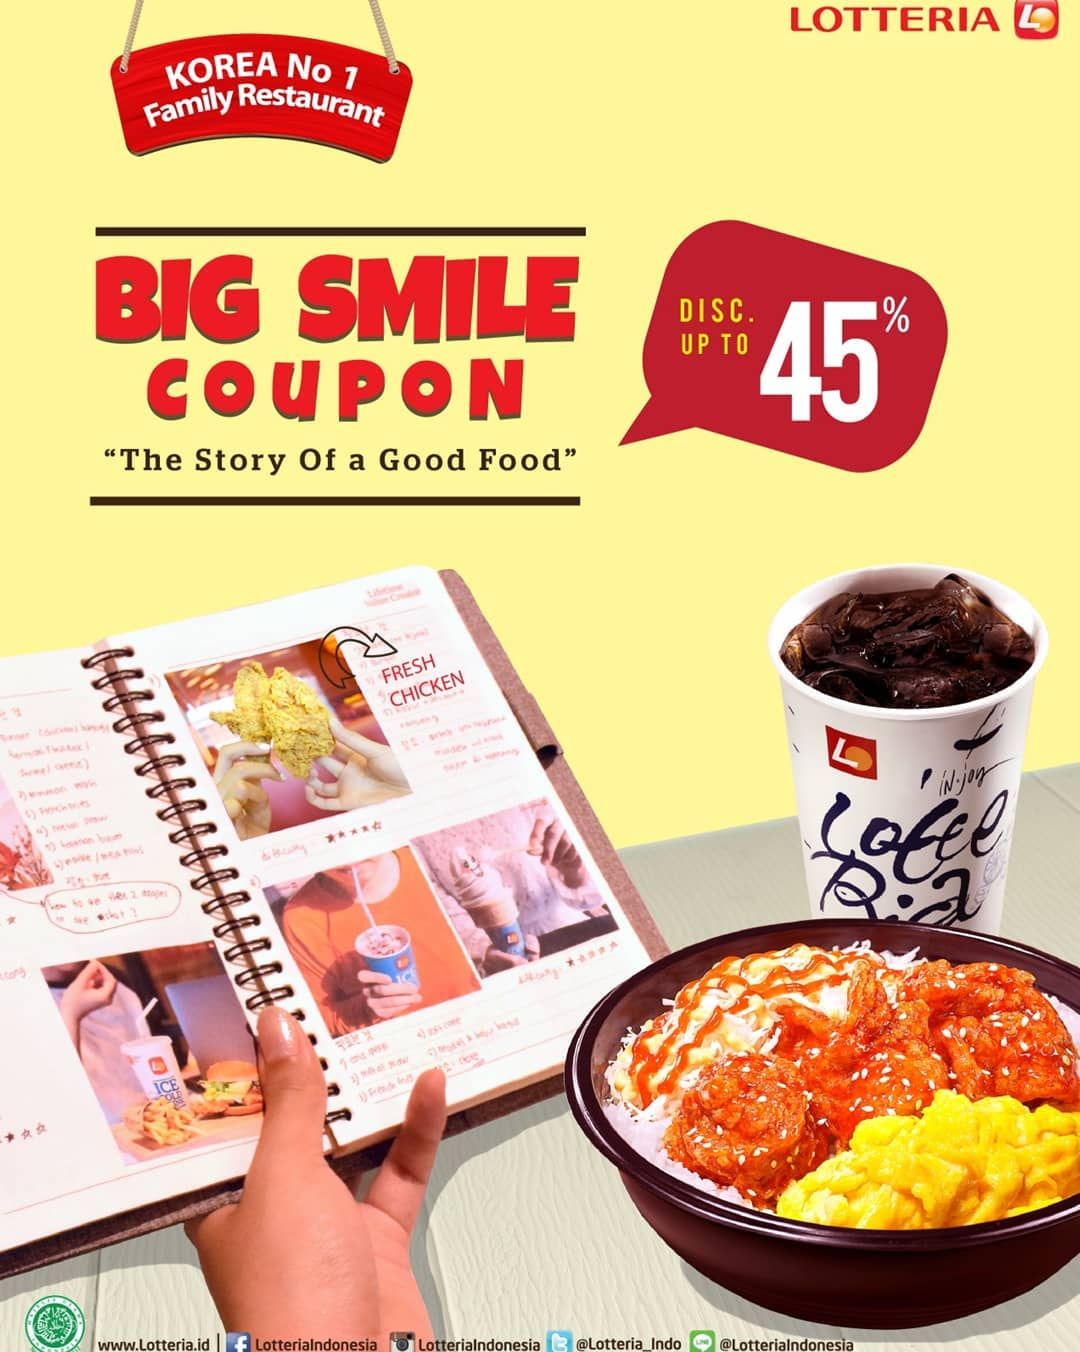 LOTTERIA Big Smile Coupon, HEMAT hingga 45%